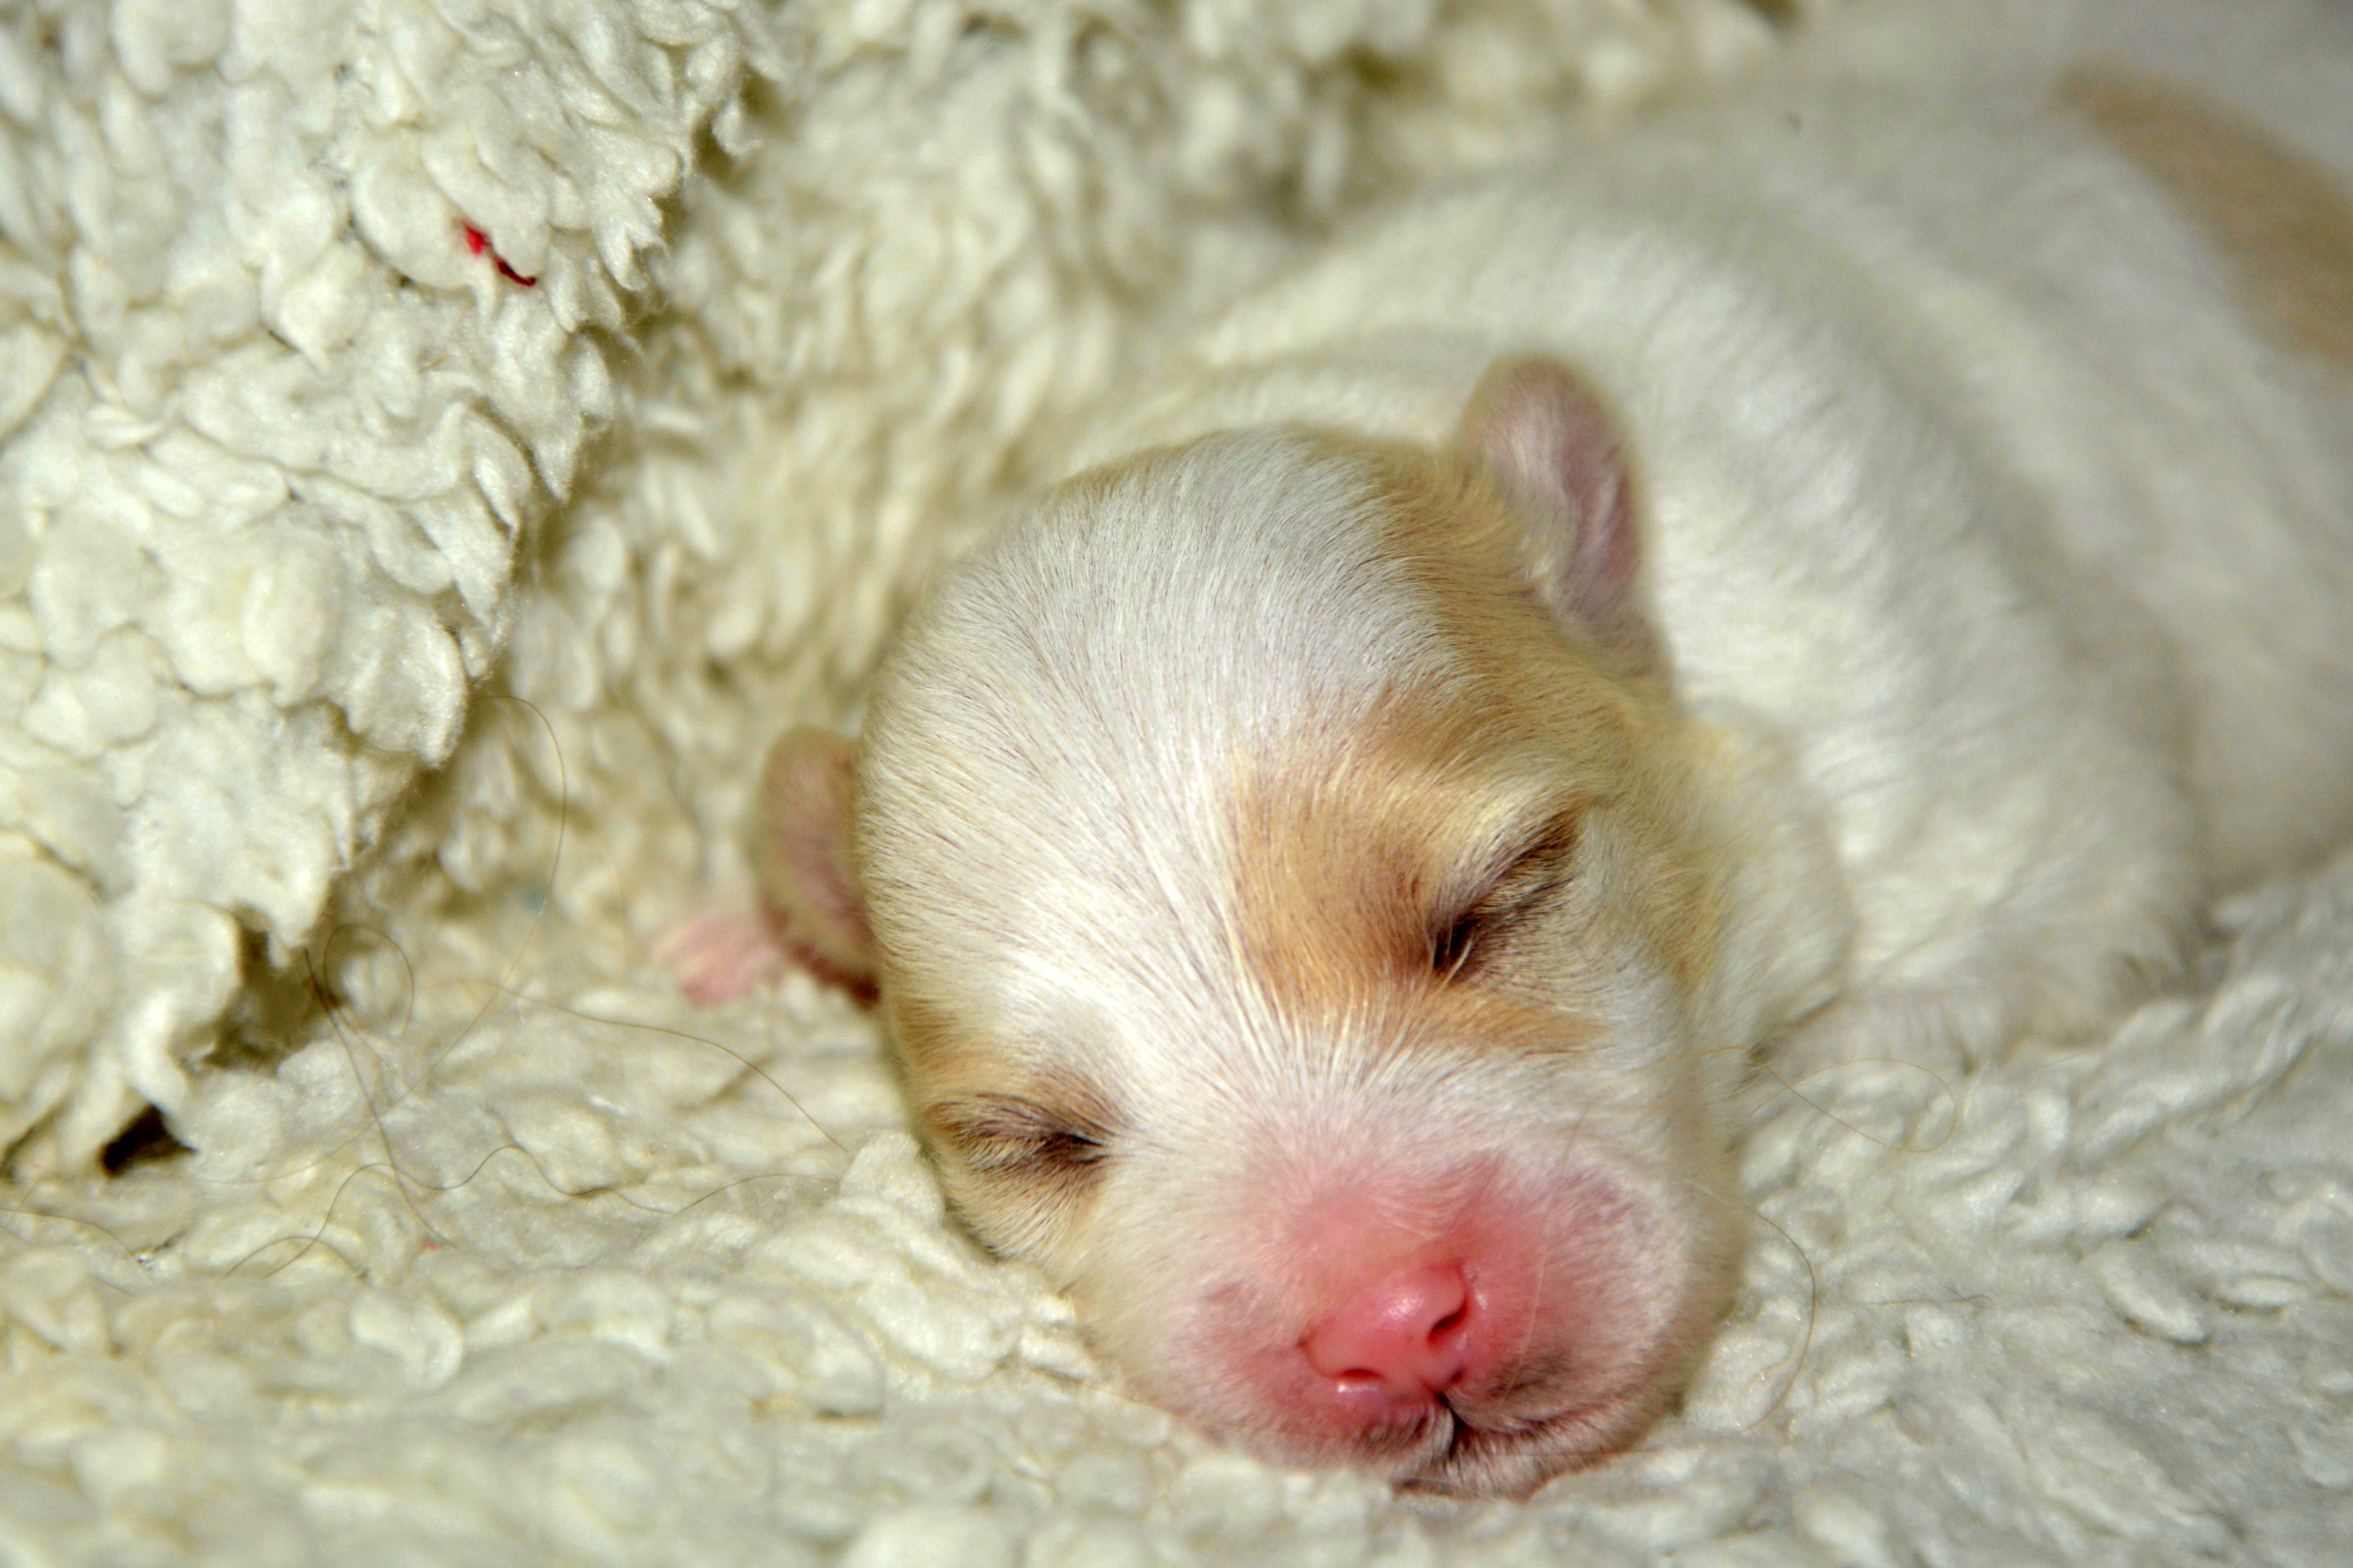 Small Baby Dog Laying In Bed Image Free Stock Photo